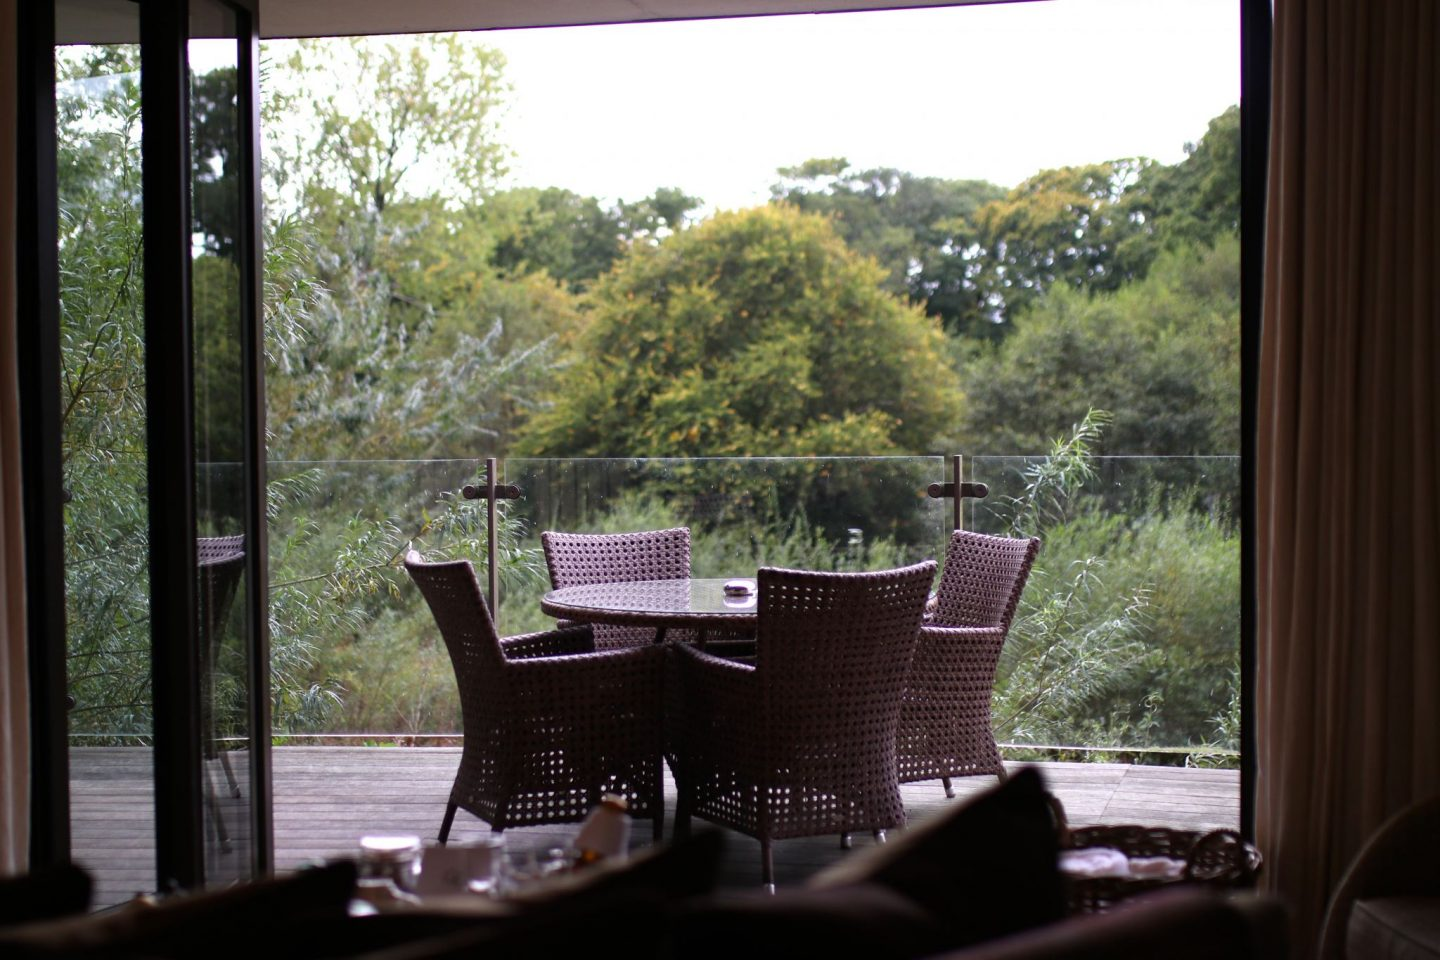 A stay in a Luxury Tree House, Chewton Glen, The New Forest, Katie KALANCHOE